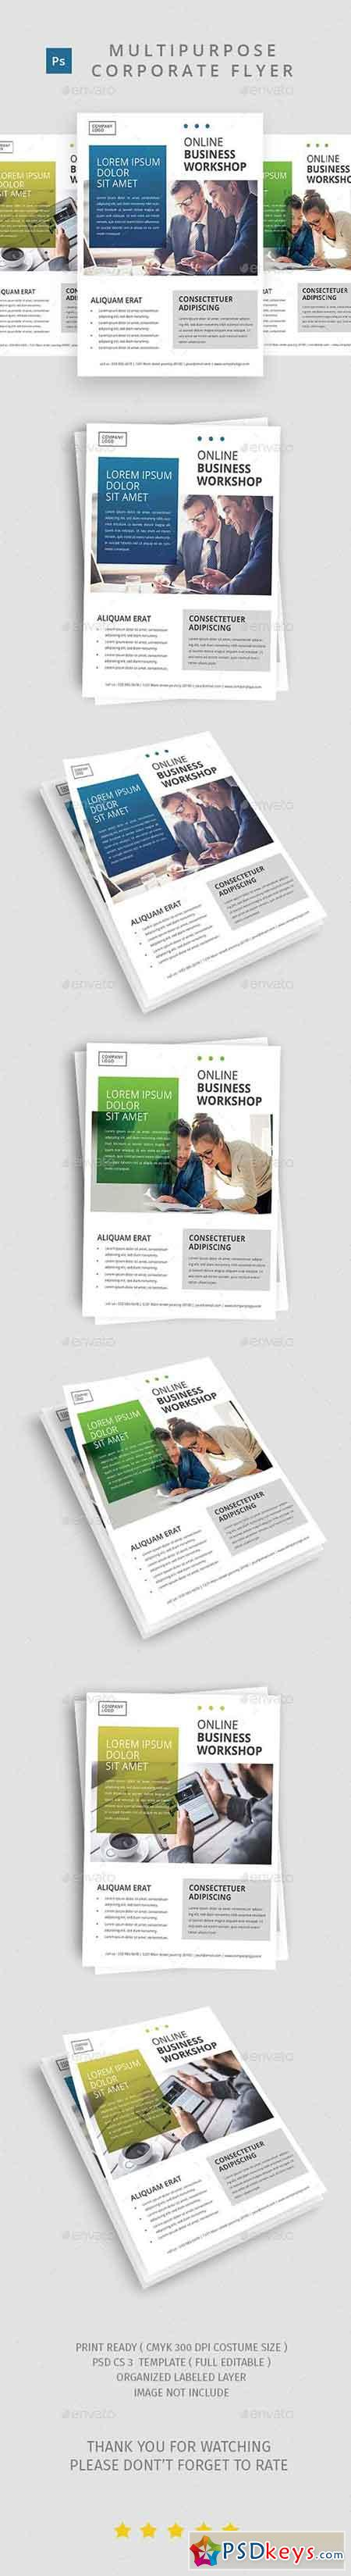 Multipurpose Corporate Flyer Template 20225193